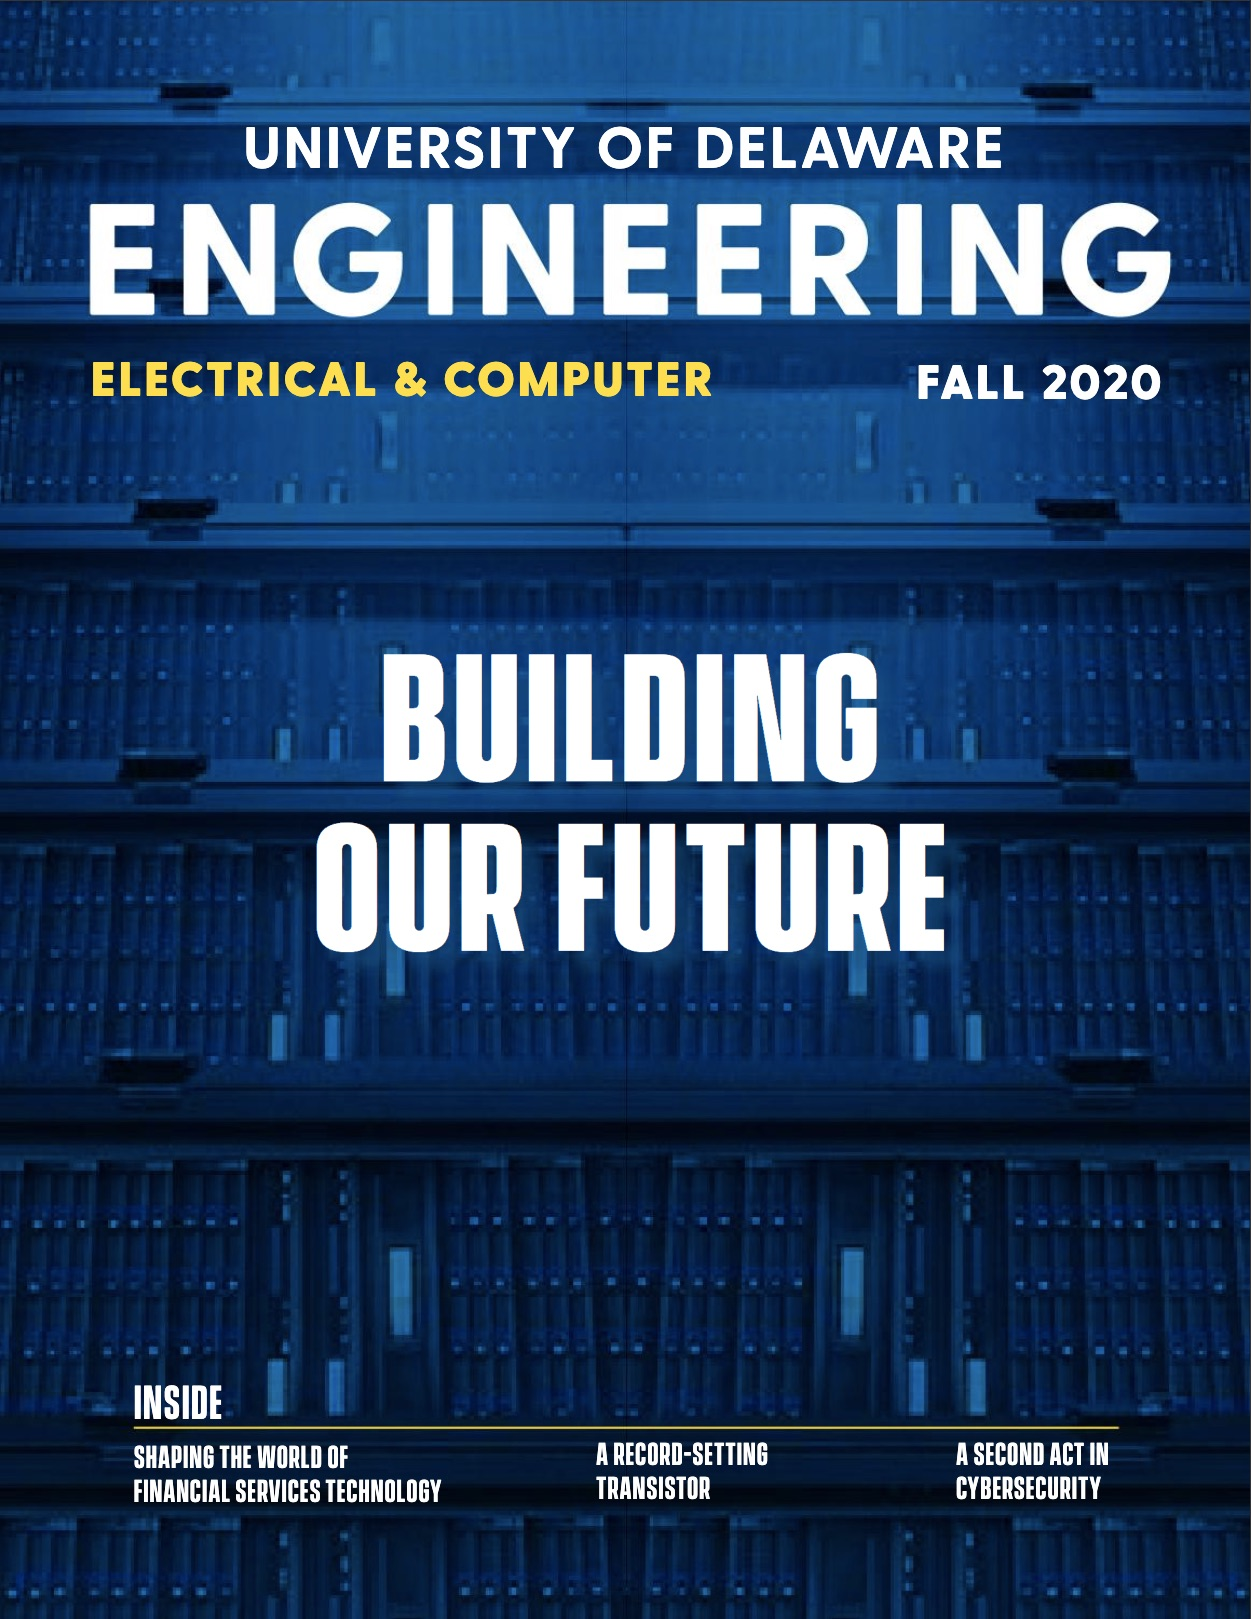 cover of the magazine for the Electrical and Computer Engineering department